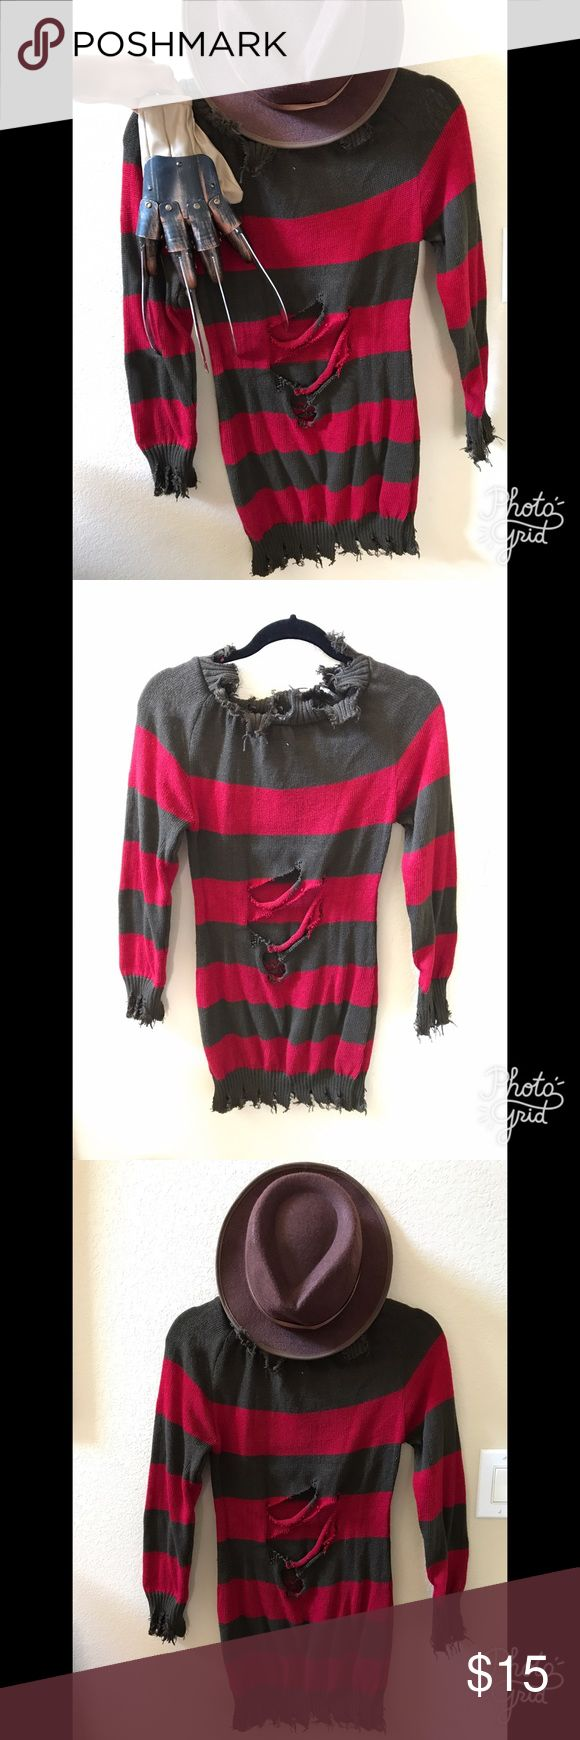 Freddy Krueger women's Halloween costume Sweater-dress style. Light-weight sweater material. Worn once 4 years ago. Practically new. Shows stomach area when wearing it. Size small. Comes with hat and glove. Dresses Long Sleeve